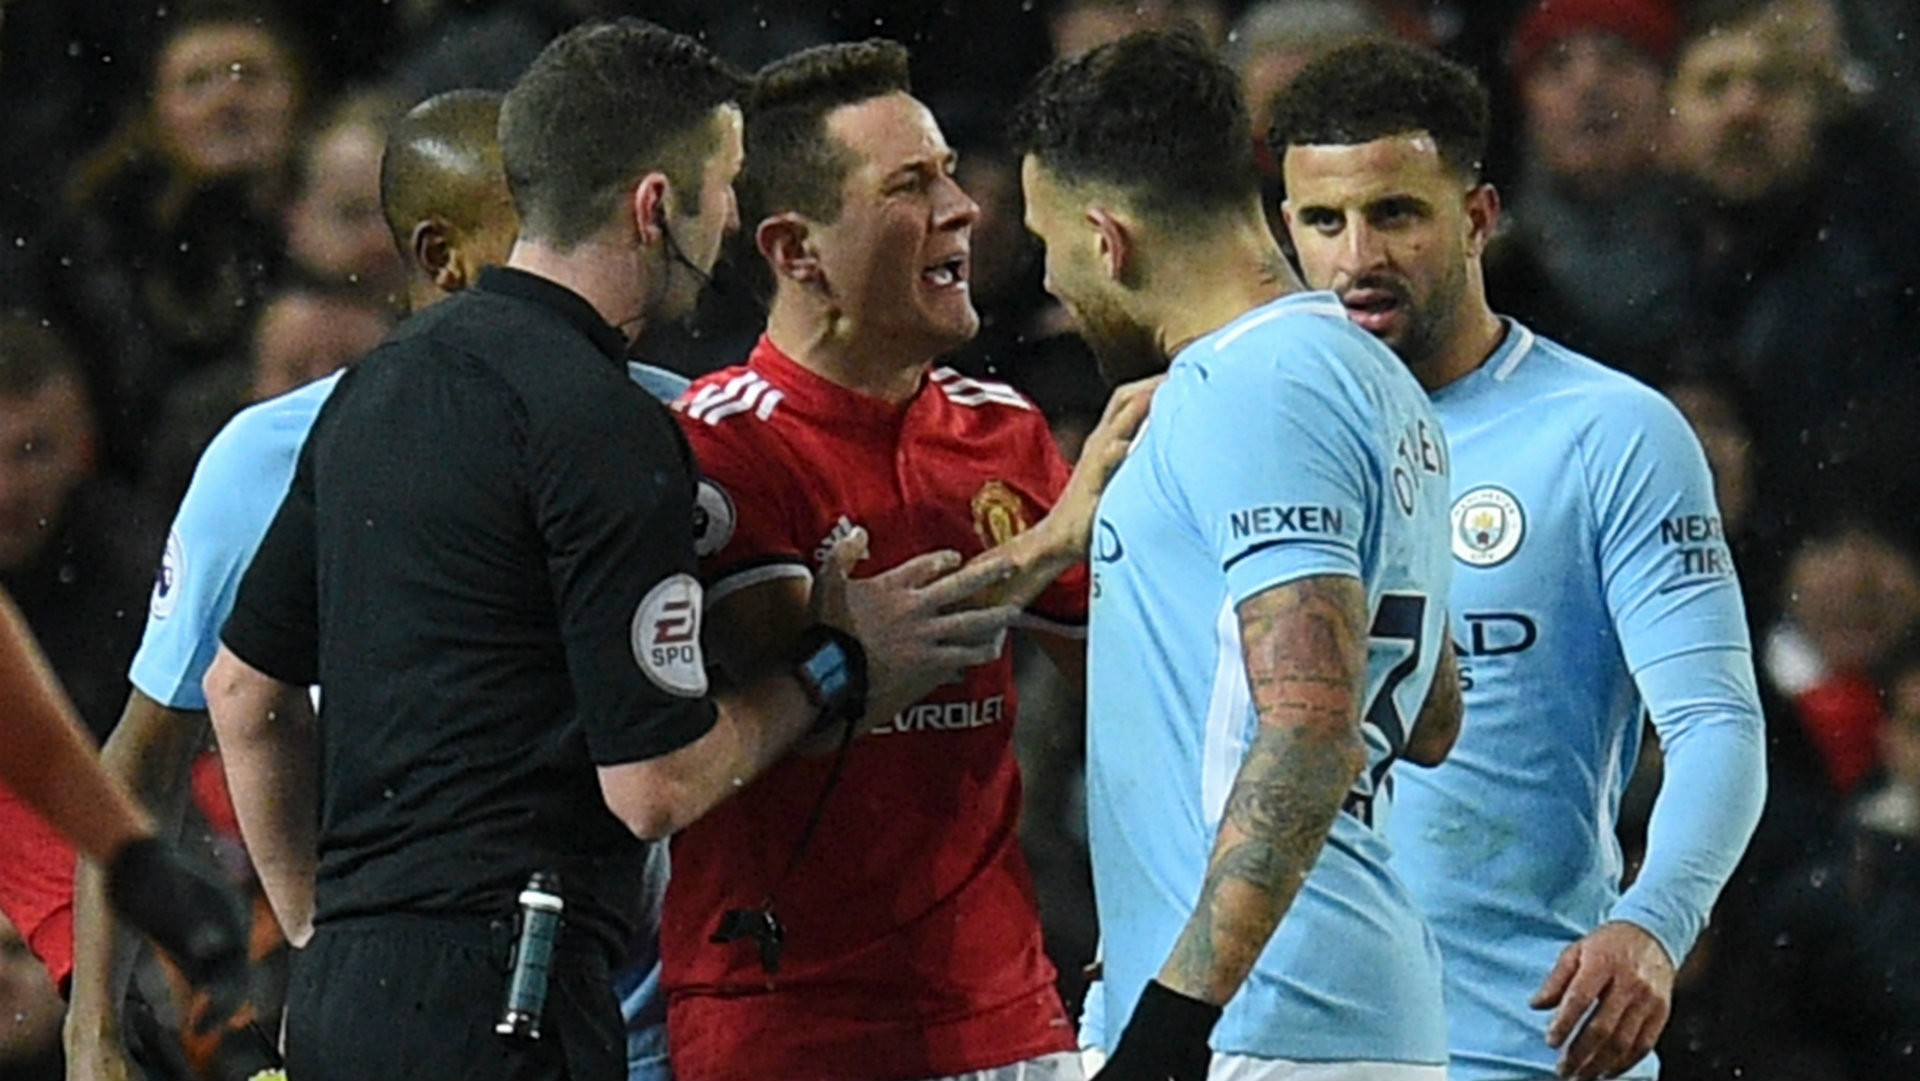 https://images.performgroup.com/di/library/GOAL/14/ae/ander-herrera-nicolas-otamendi-manchester-united-vs-manchester-city-1718_1o0fvnapgy2rq1bubidljeuexw.jpg?t=1102875096&quality=90&w=0&h=1260